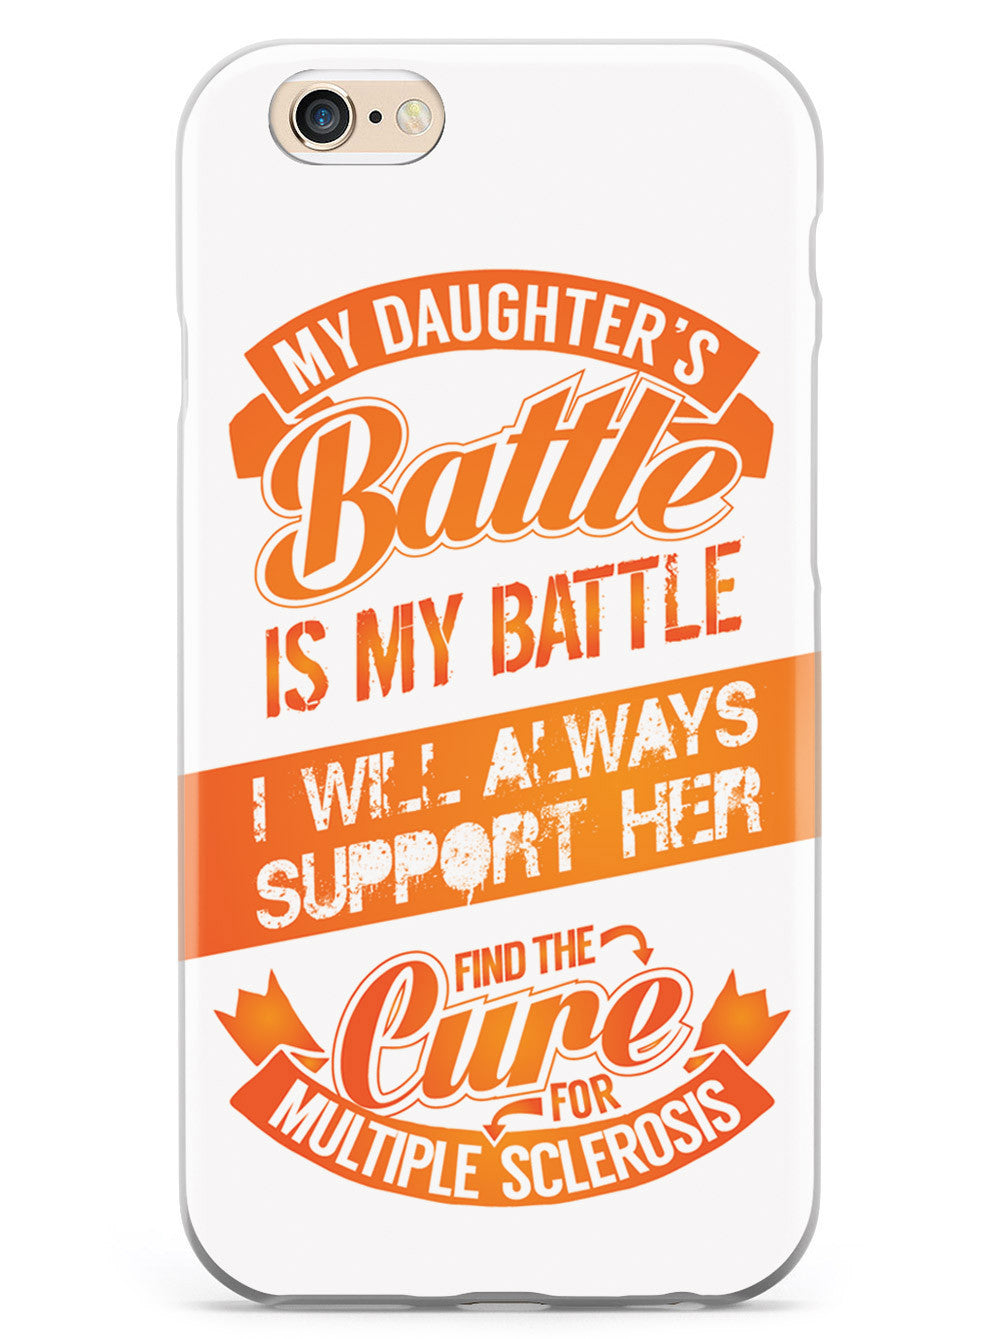 My Daughter's Battle - Multiple Sclerosis Awareness/Support Case